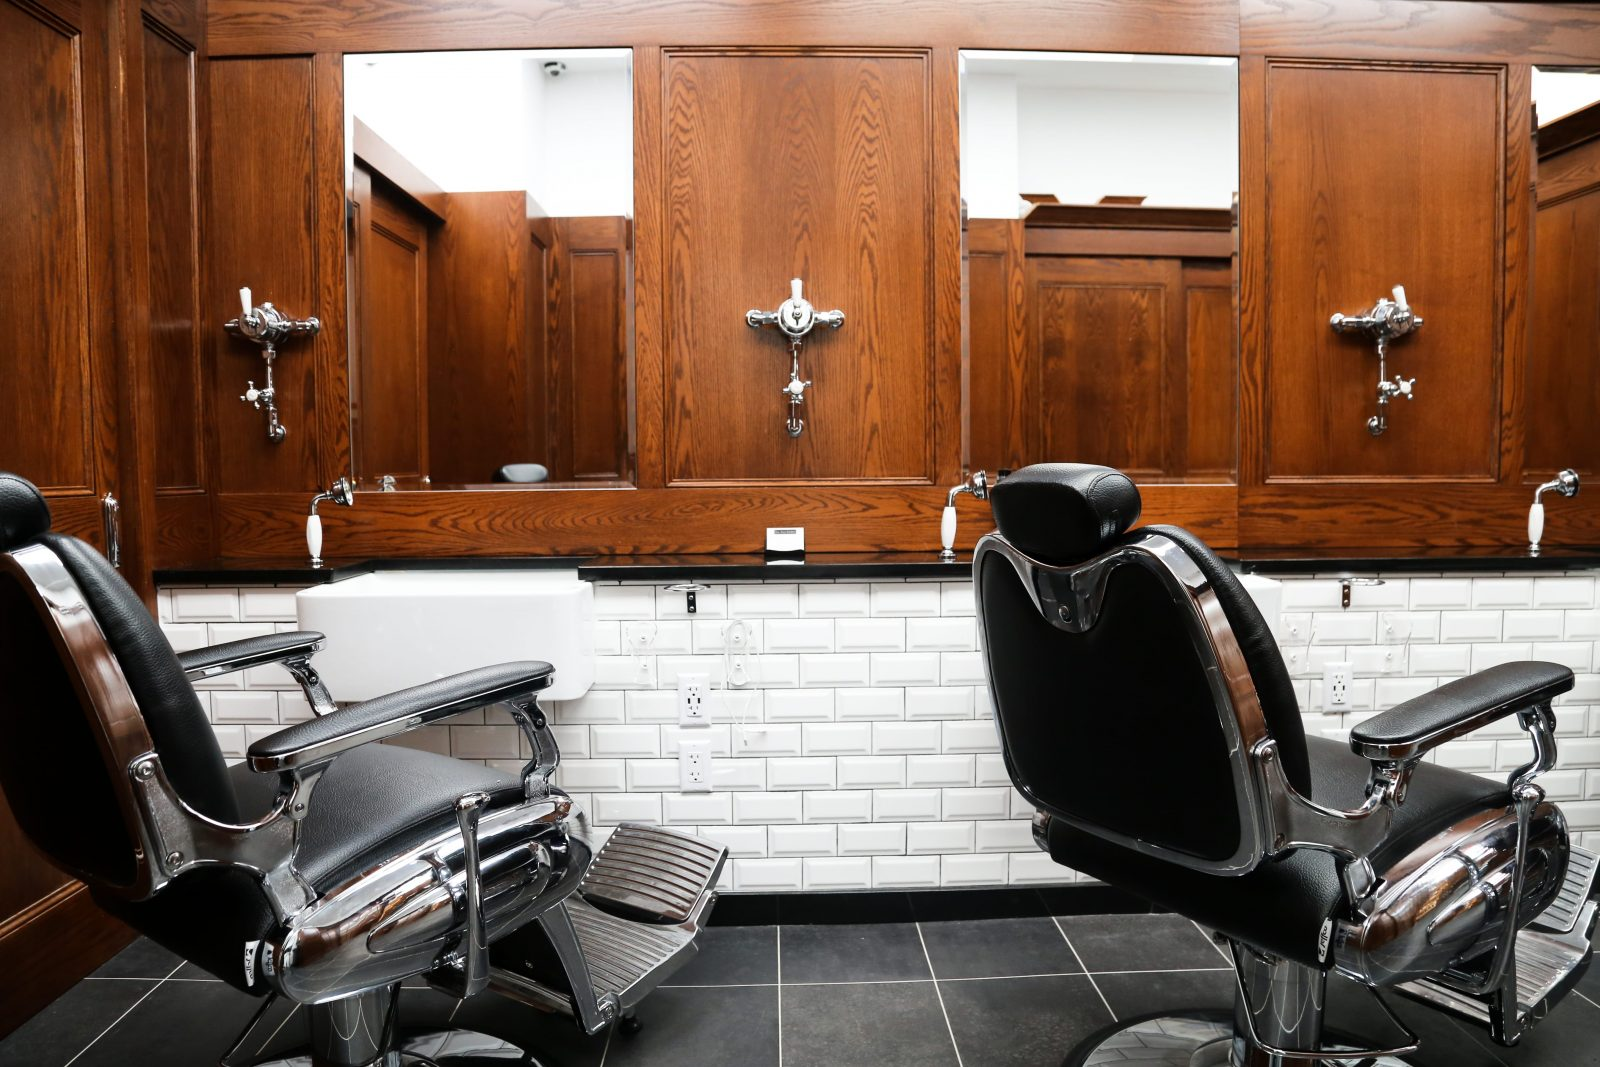 Colorist Services in NYC at Pall Mall Barbers